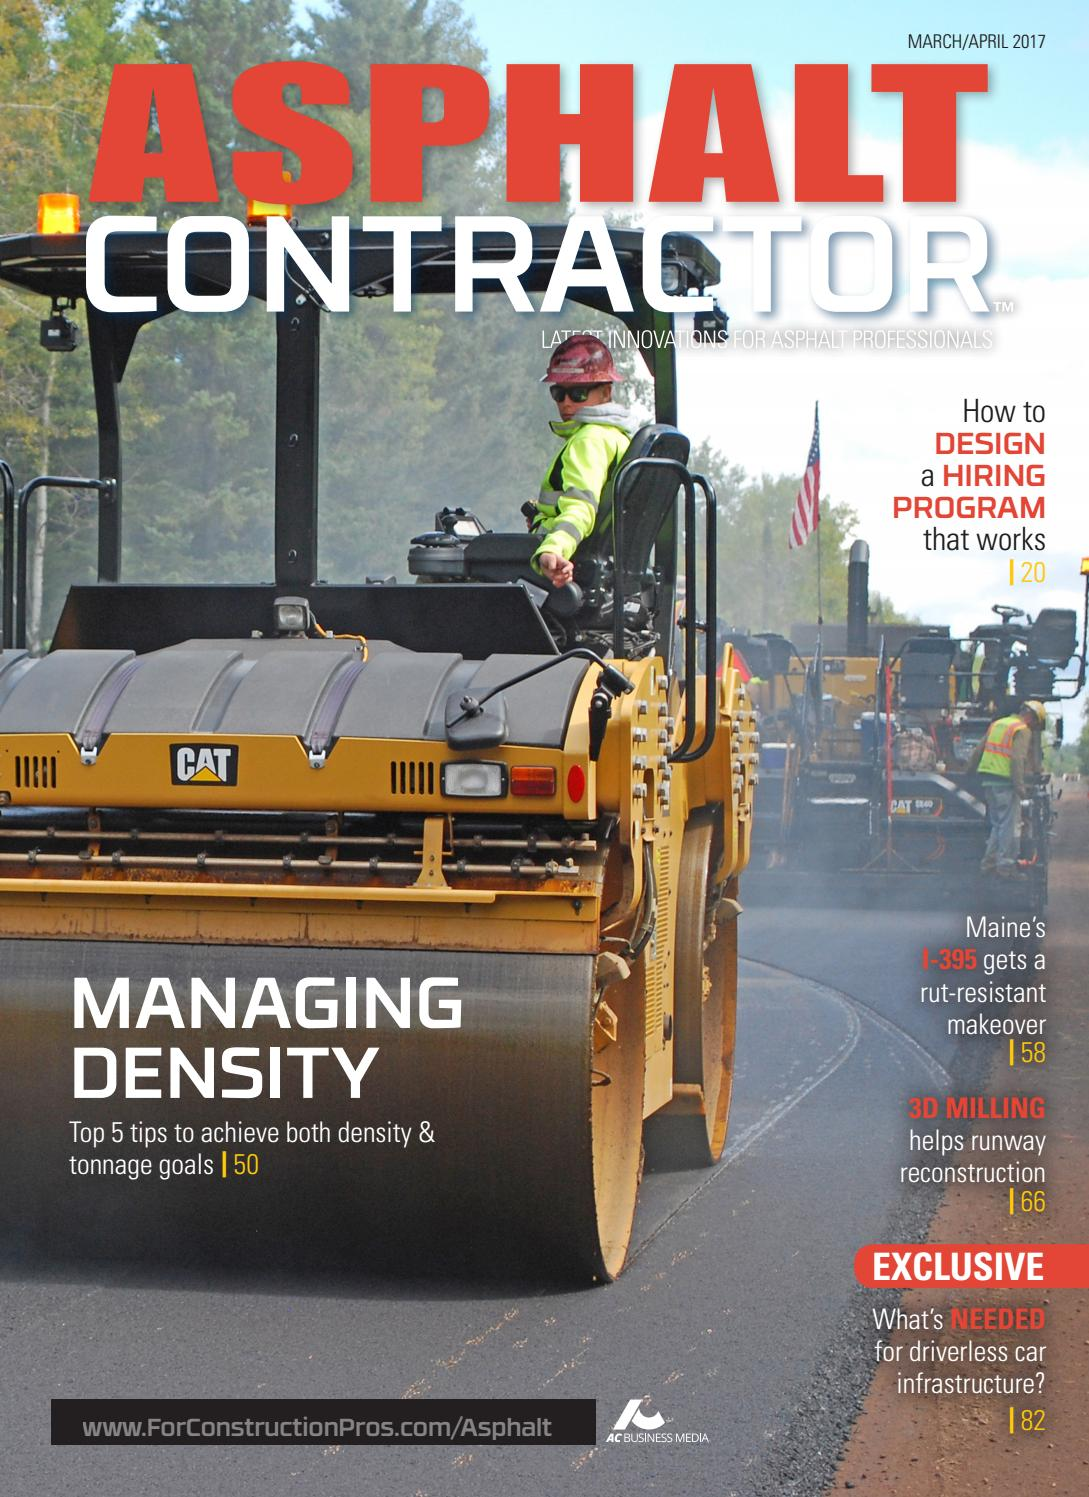 Asphalt Contractor March/April 2017 by ForConstructionPros